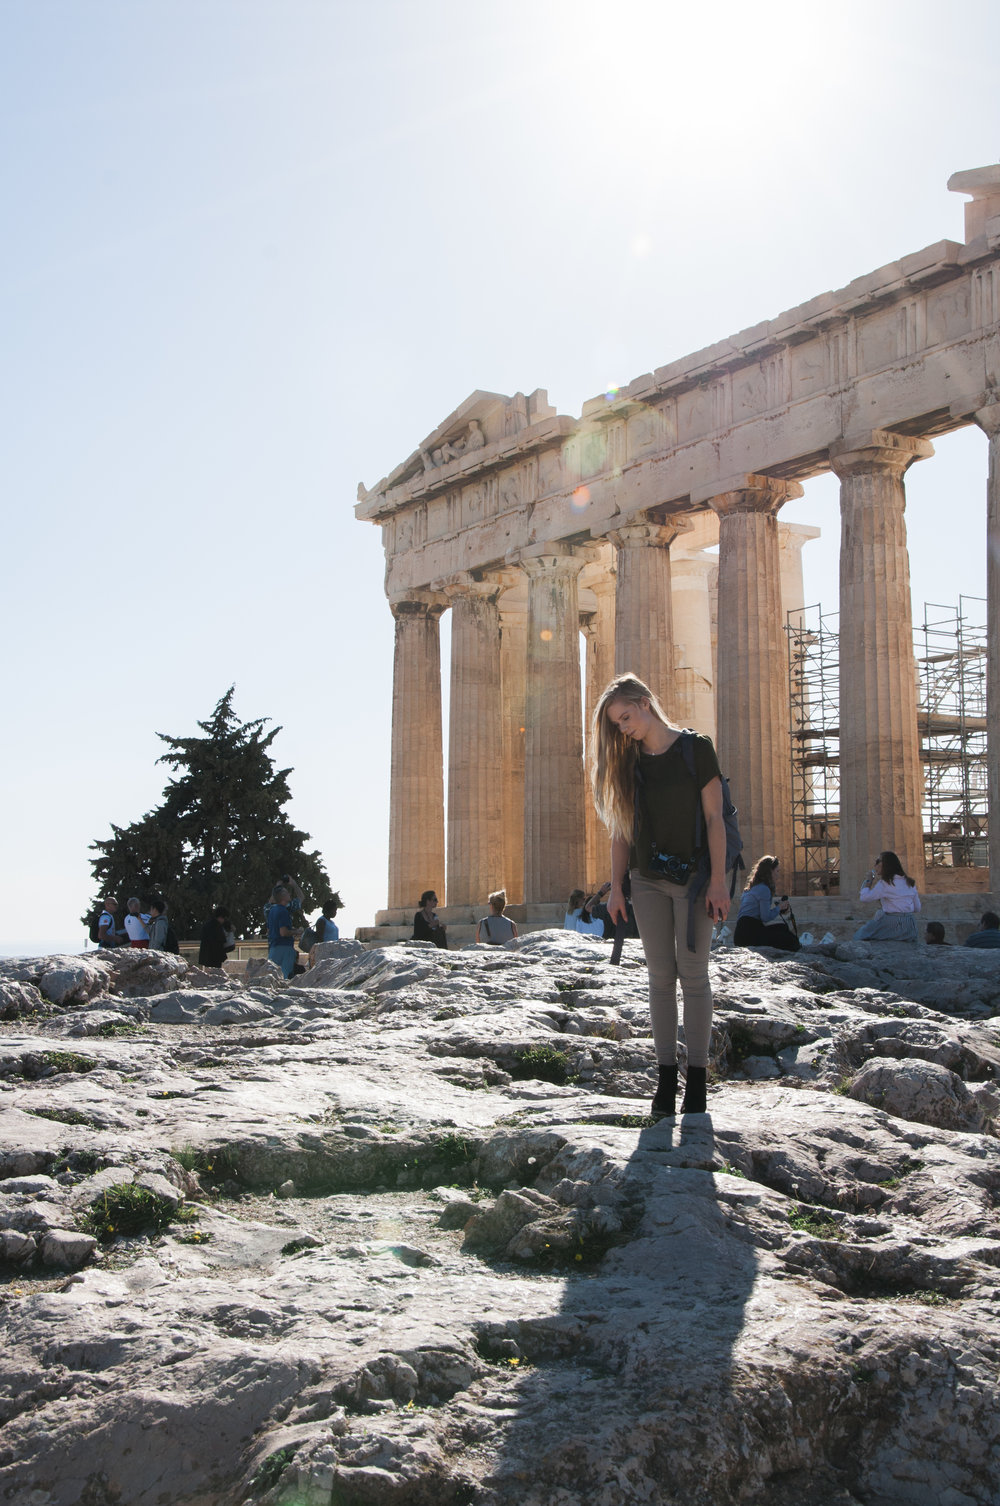 Standing at the Acropolis, Athens, Greece.